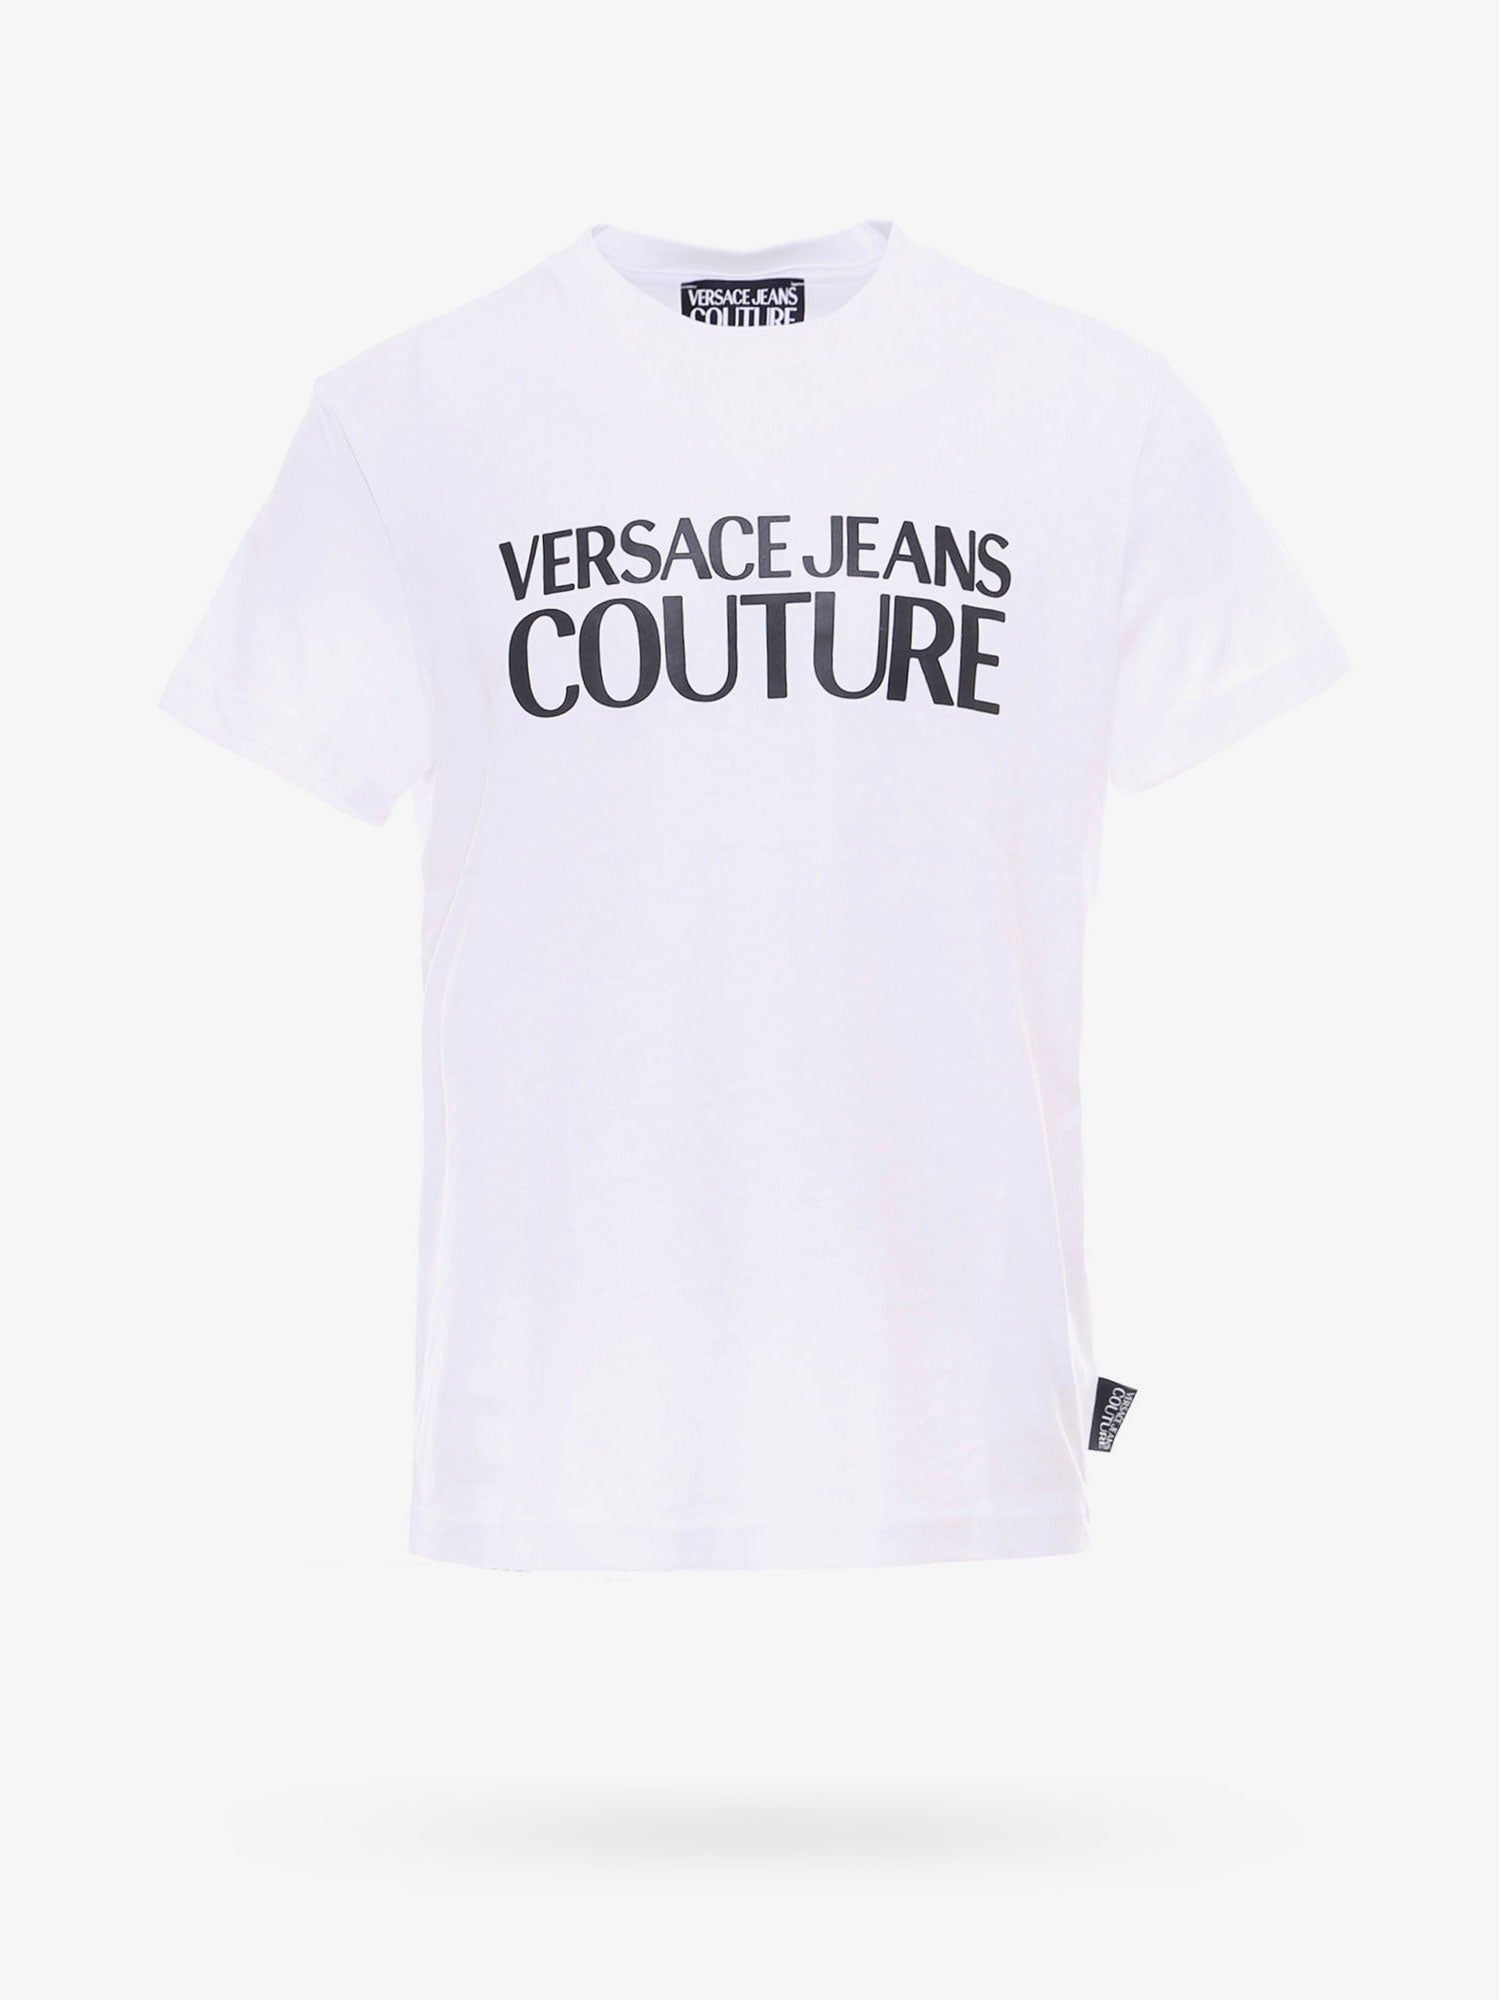 Versace Jeans Couture Knits T-SHIRT